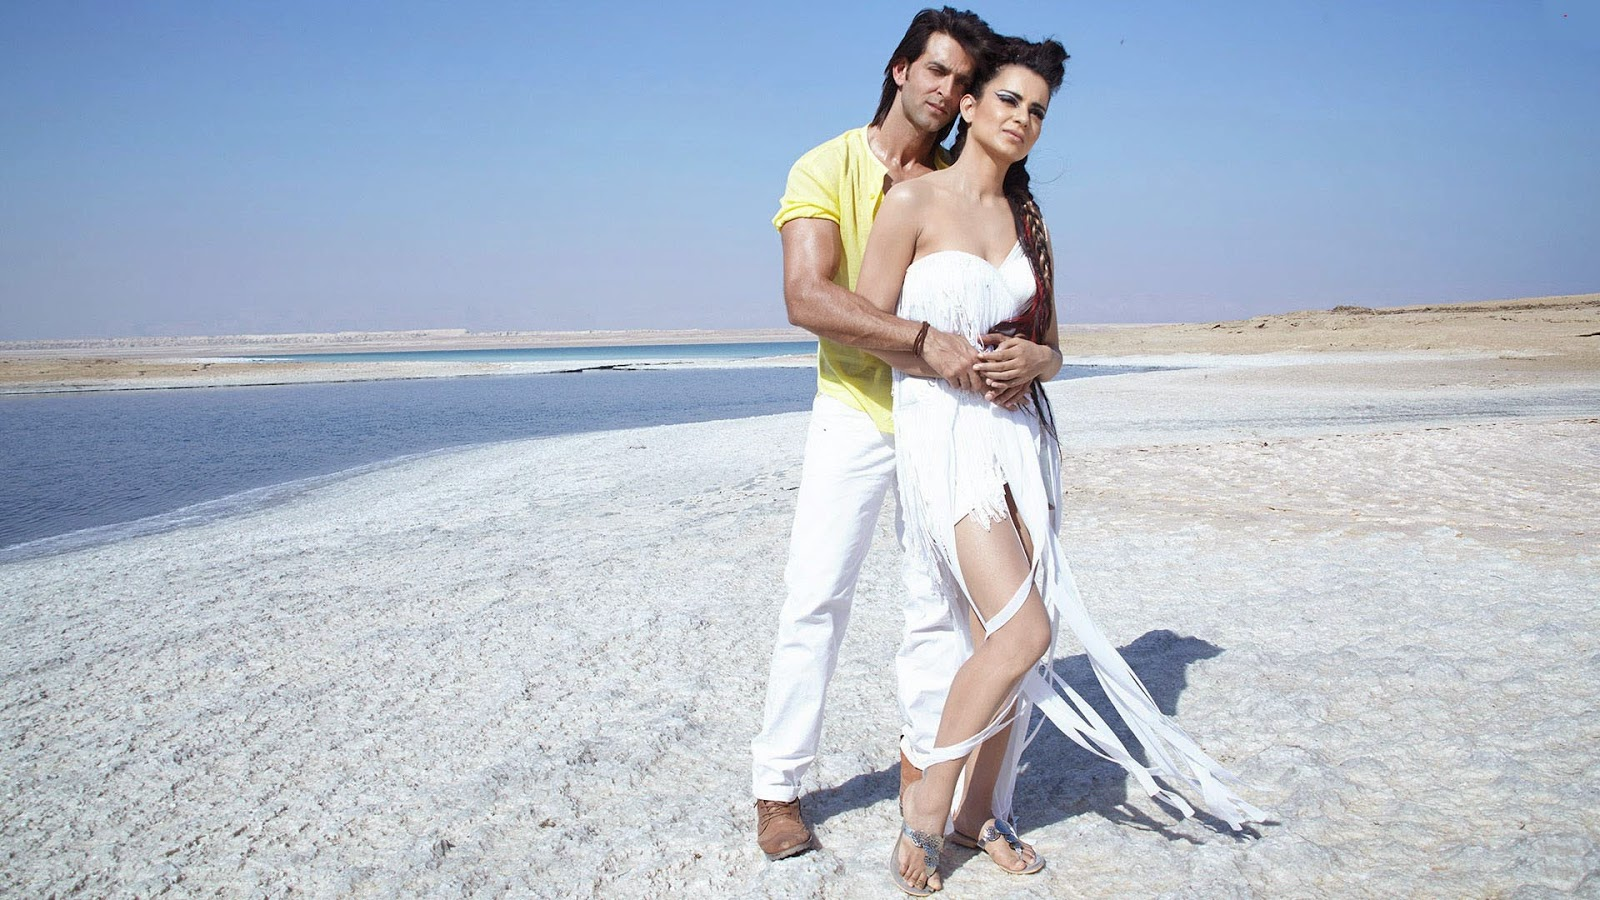 Kangana ranaut in krrish 3 with hrithik roshan hd shoot photo free